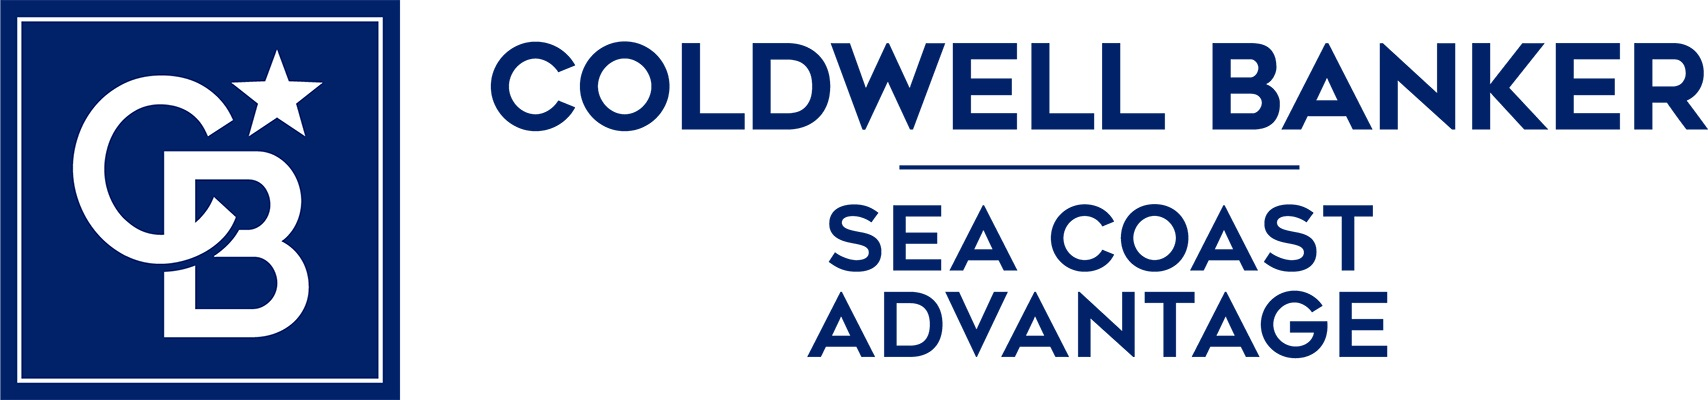 Barry Willis - Coldwell Banker Sea Coast Advantage Realty